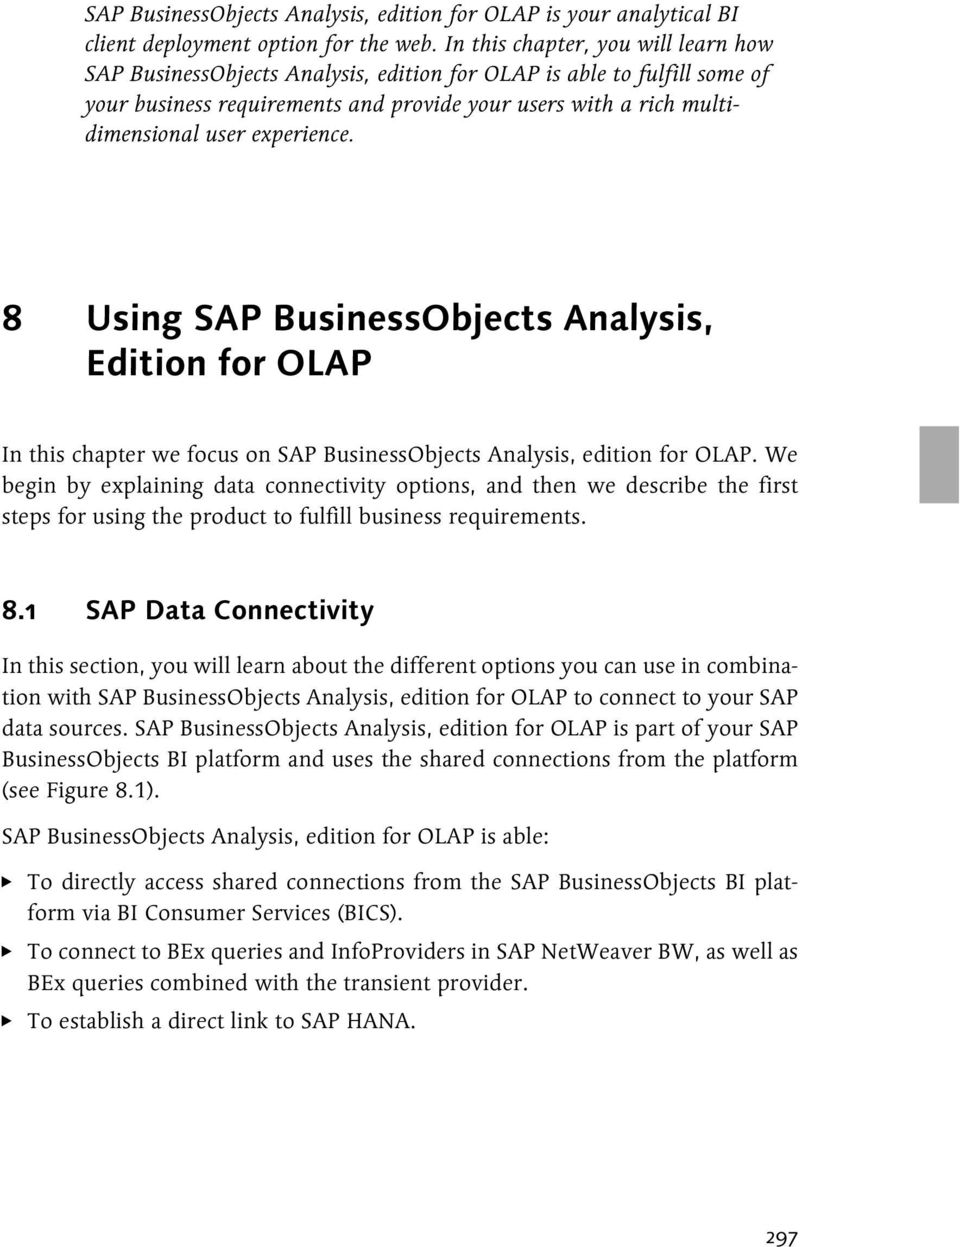 experience. 8 Using SAP BusinessObjects Analysis, Edition for OLAP In this chapter we focus on SAP BusinessObjects Analysis, edition for OLAP.